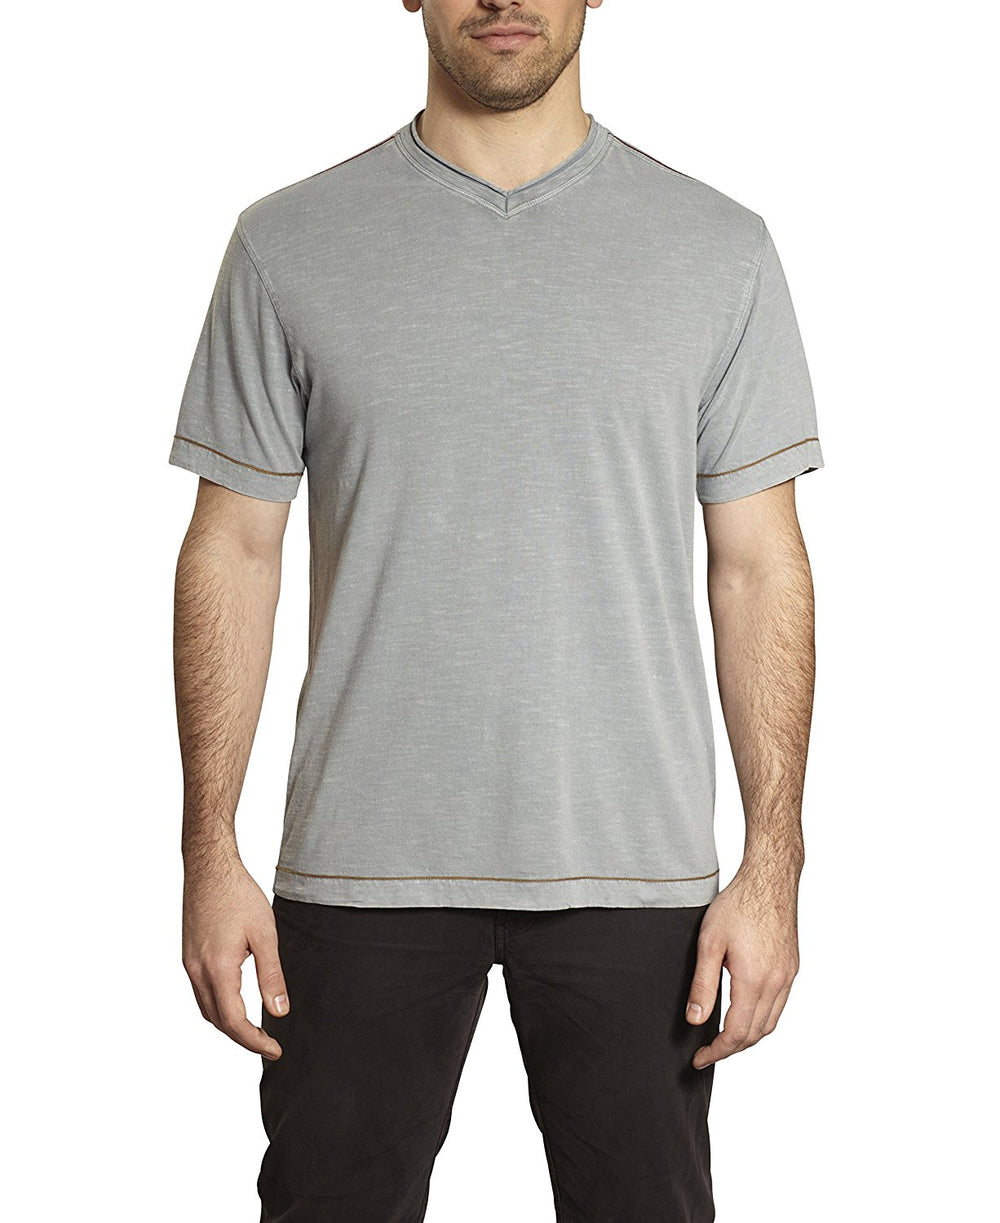 TADD by Thaddeus CAL Short Sleeve V-Neck Solid T-Shirt